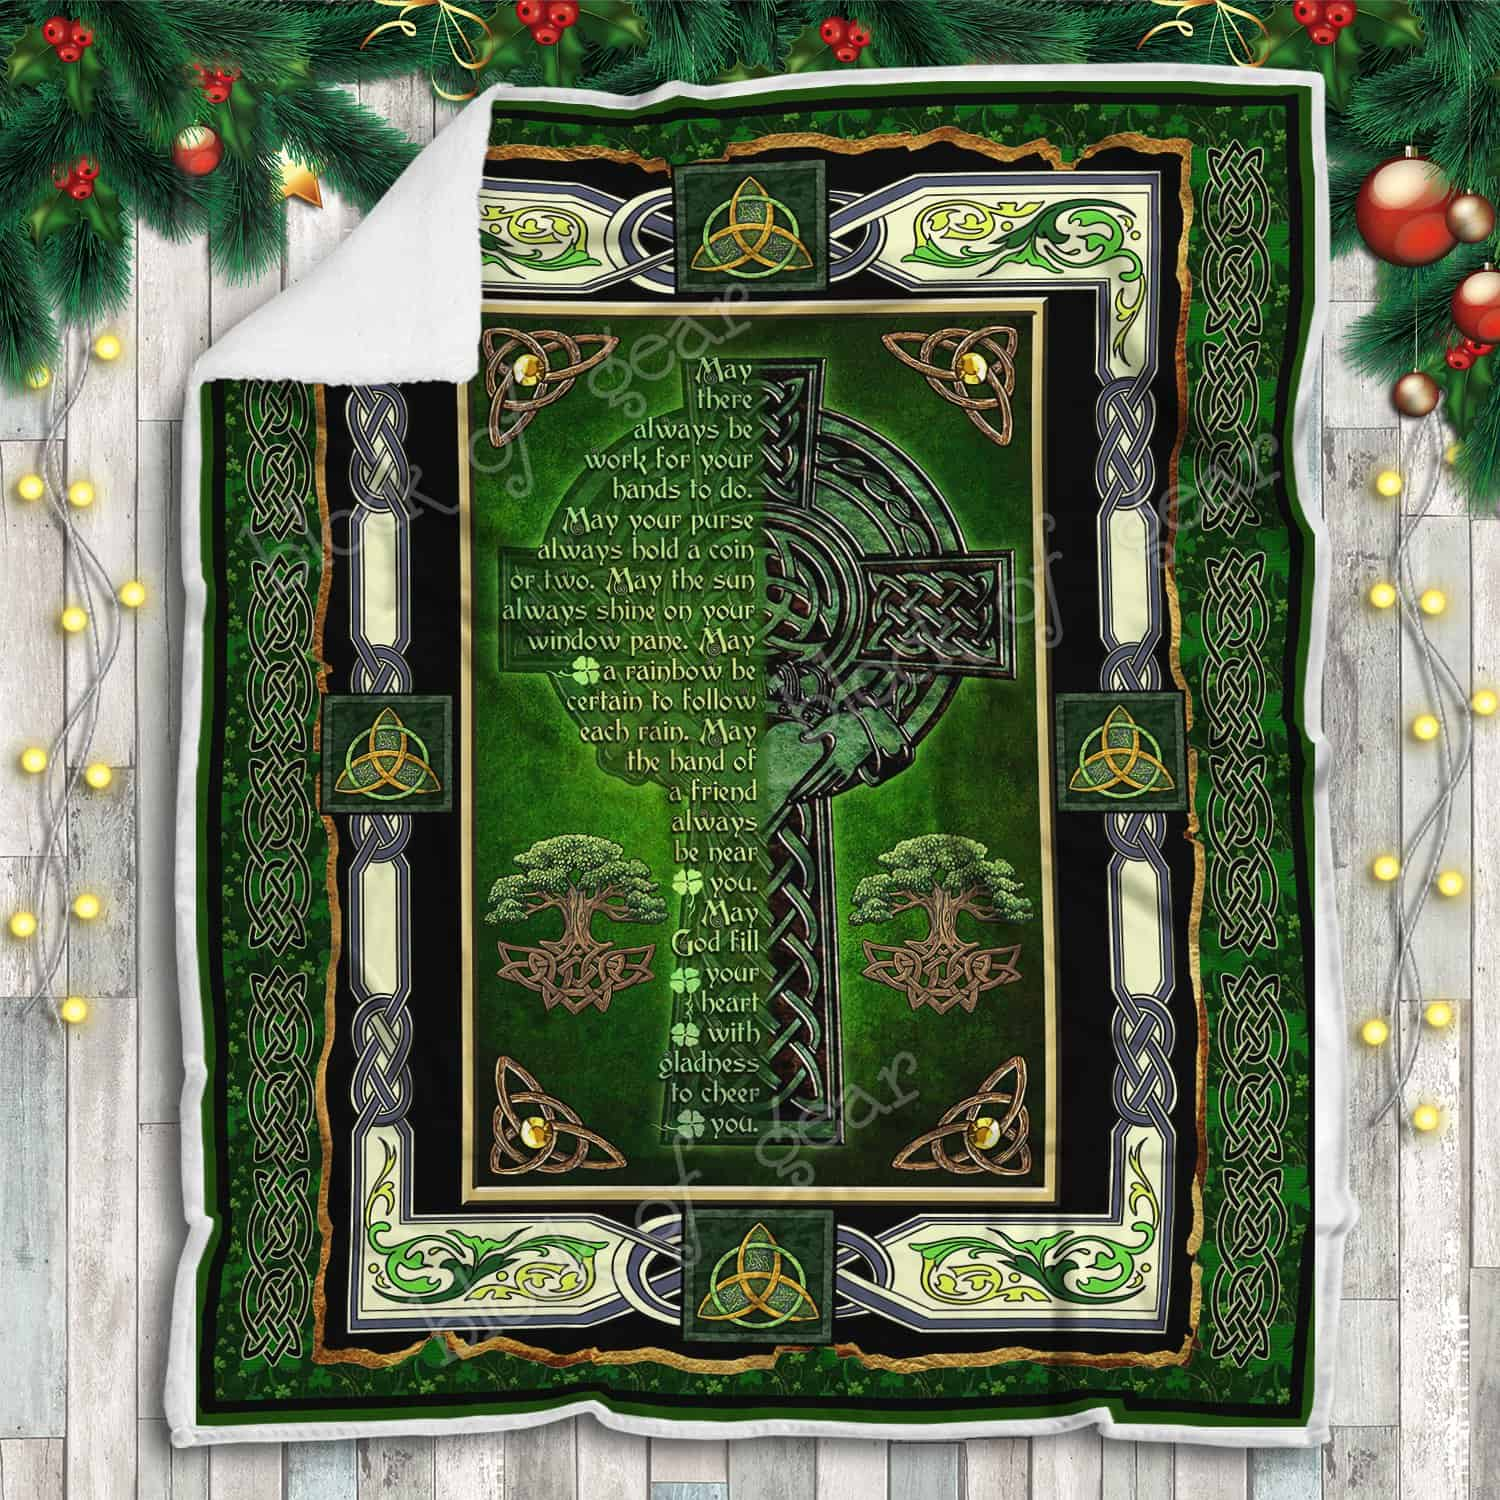 may God fill your heart with gladness to cheer you irish celtic cross blanket 5